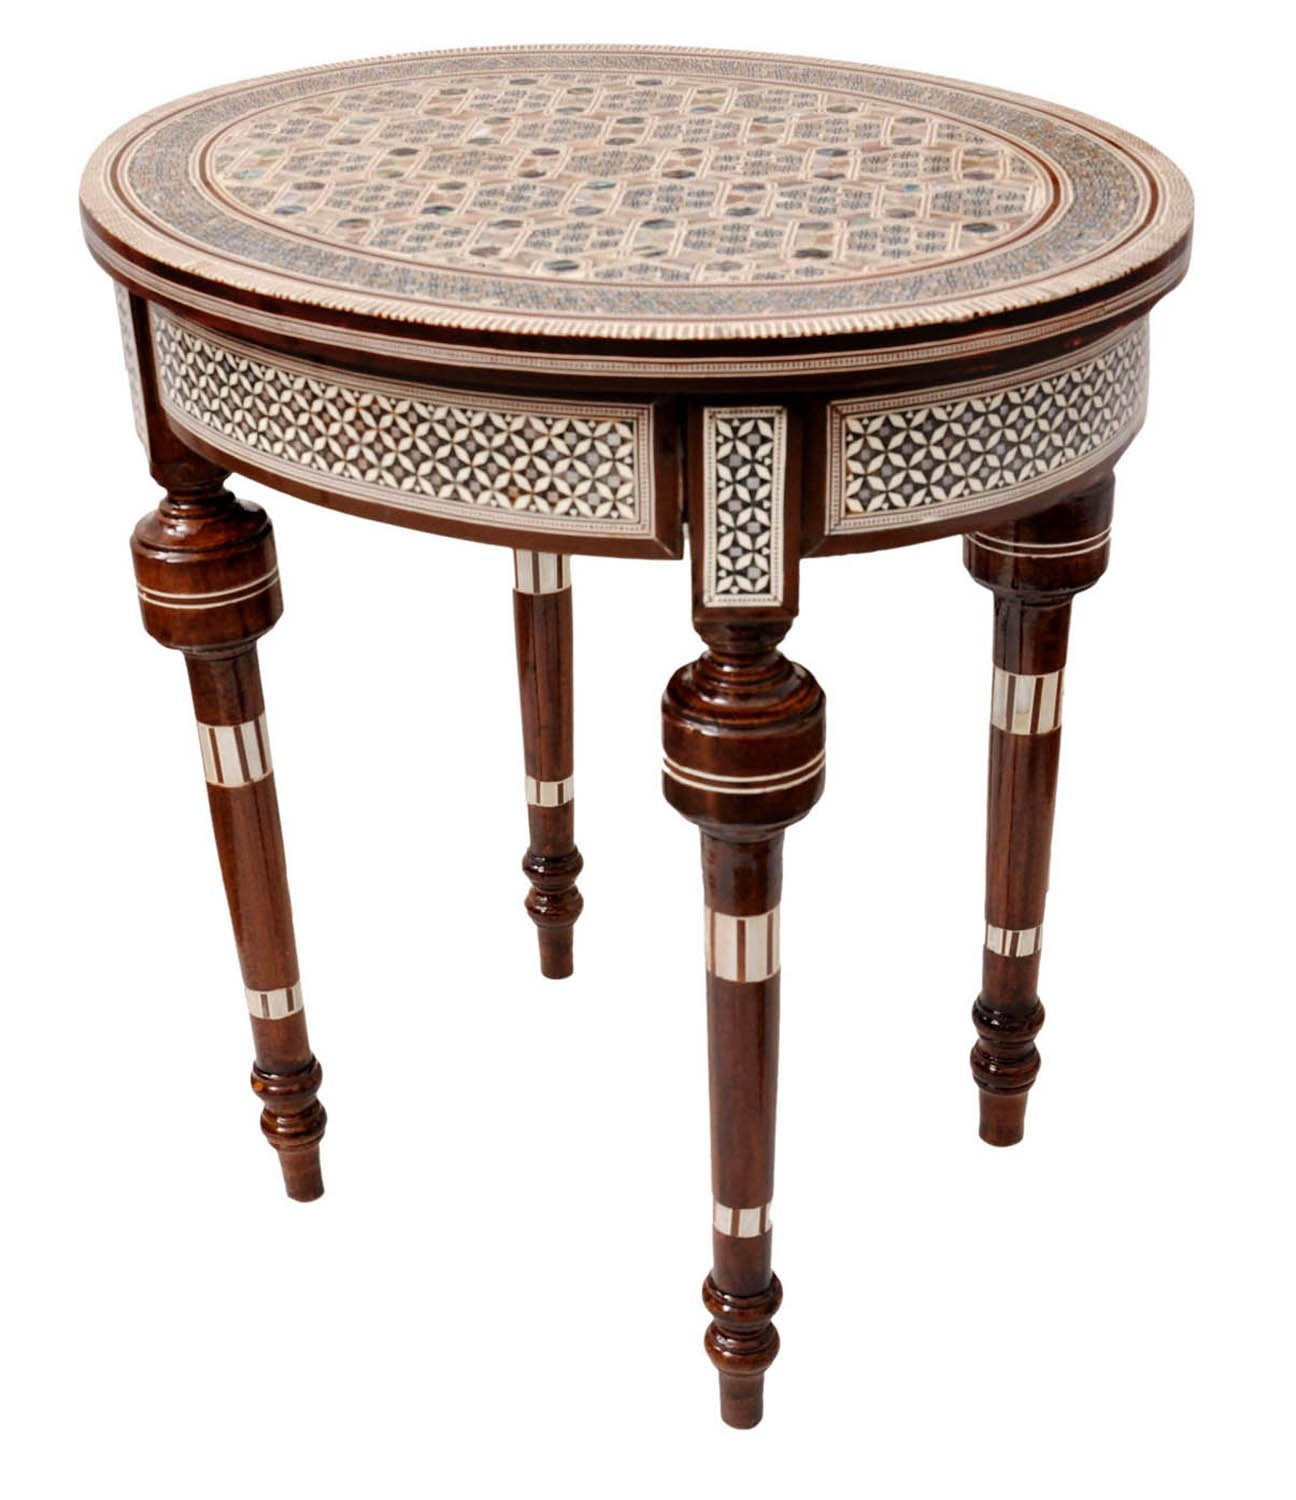 handcrafted egyptian moroccan mother of pearl inlay wood coffee side table ebay. Black Bedroom Furniture Sets. Home Design Ideas